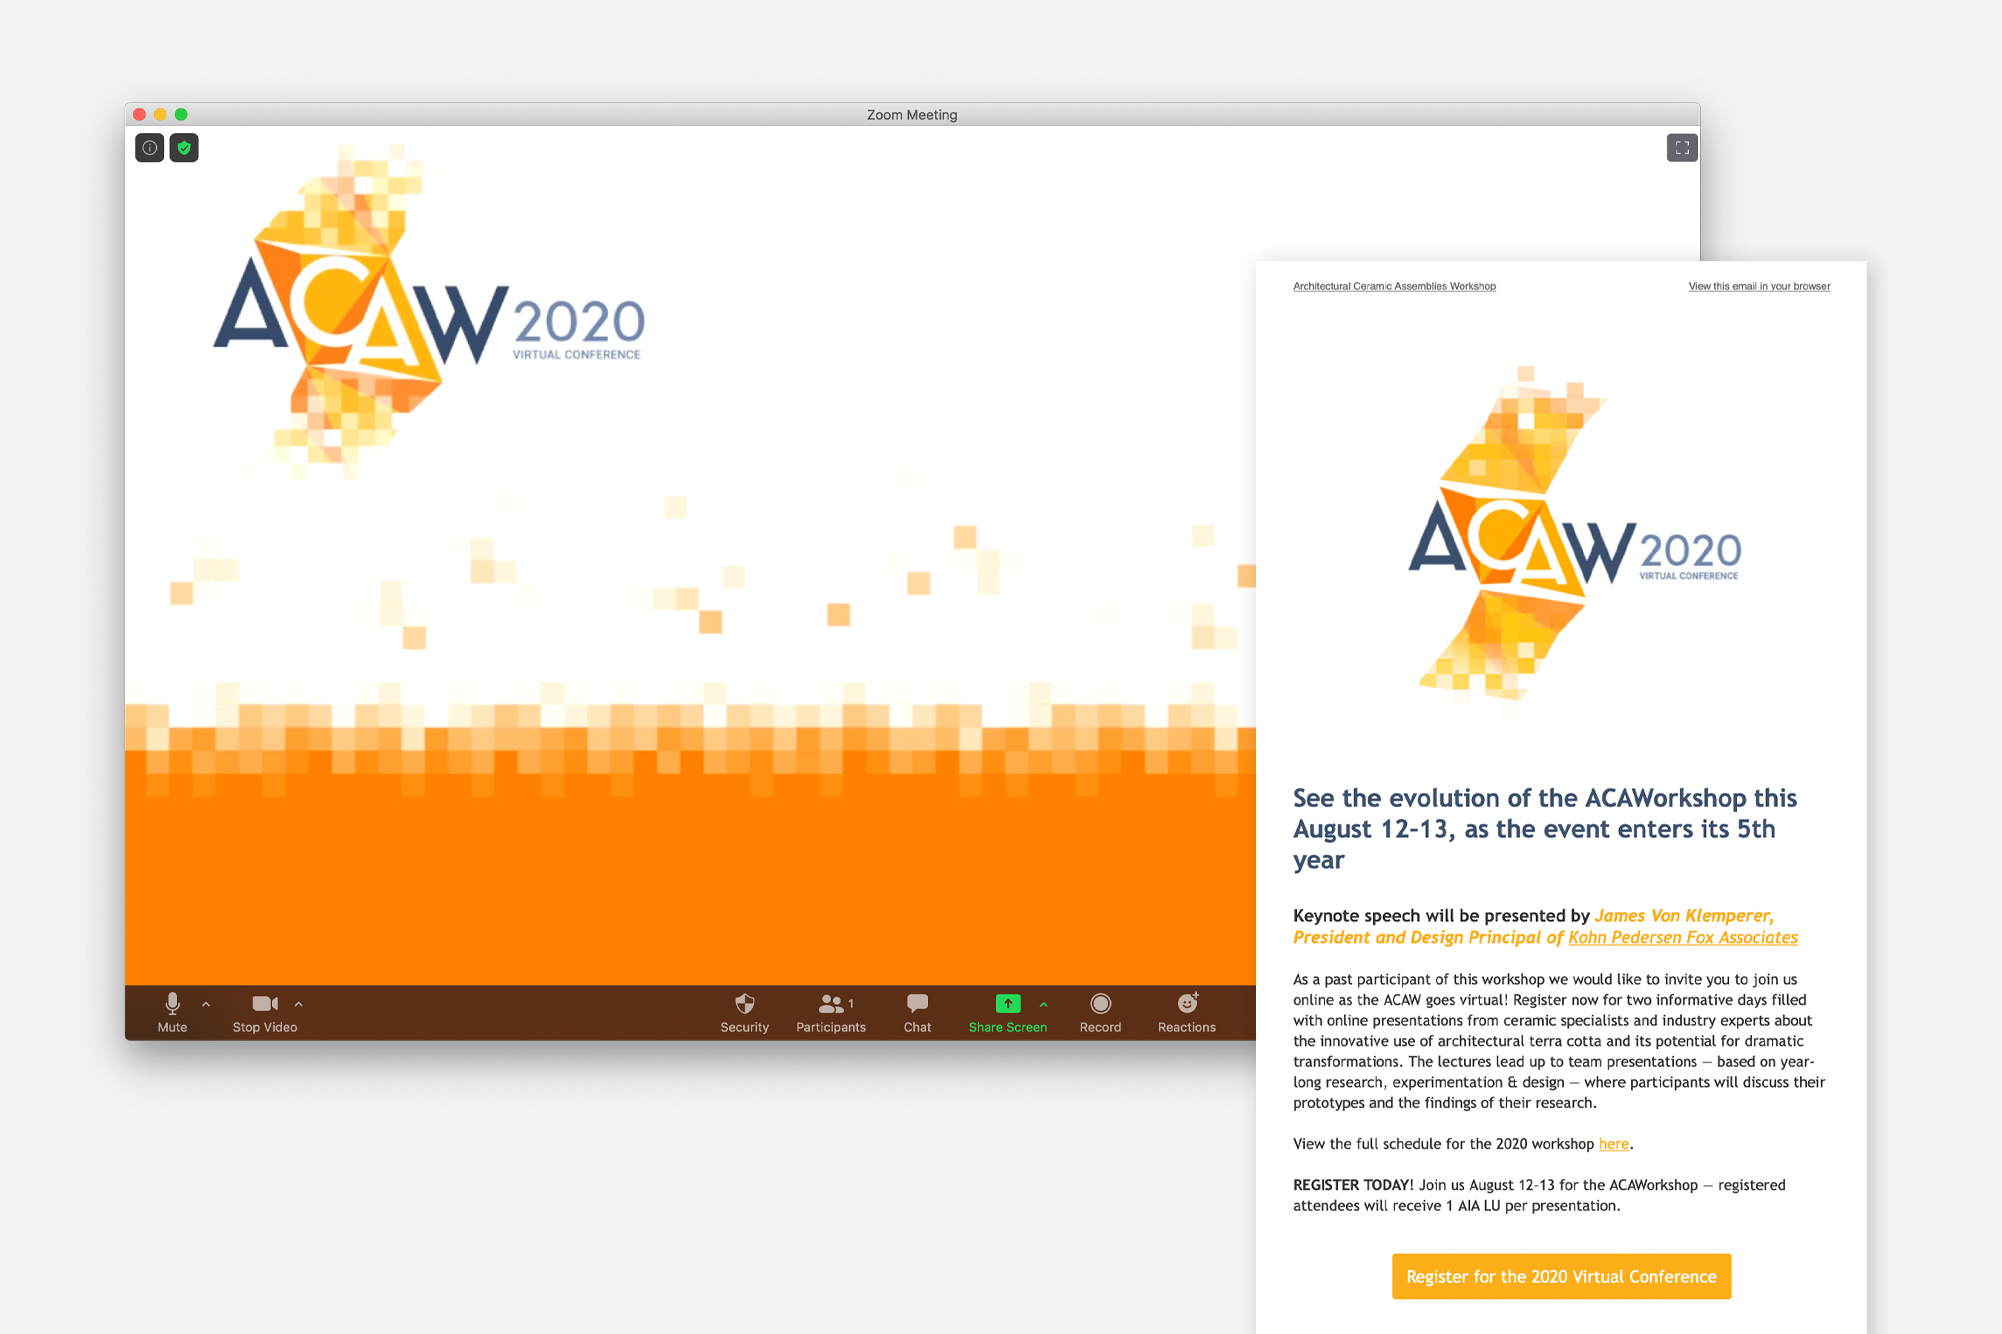 OtherWisz designed a full package of assets for the ACAW 2020 virtual event, including email marketing and custom Zoom backgrounds